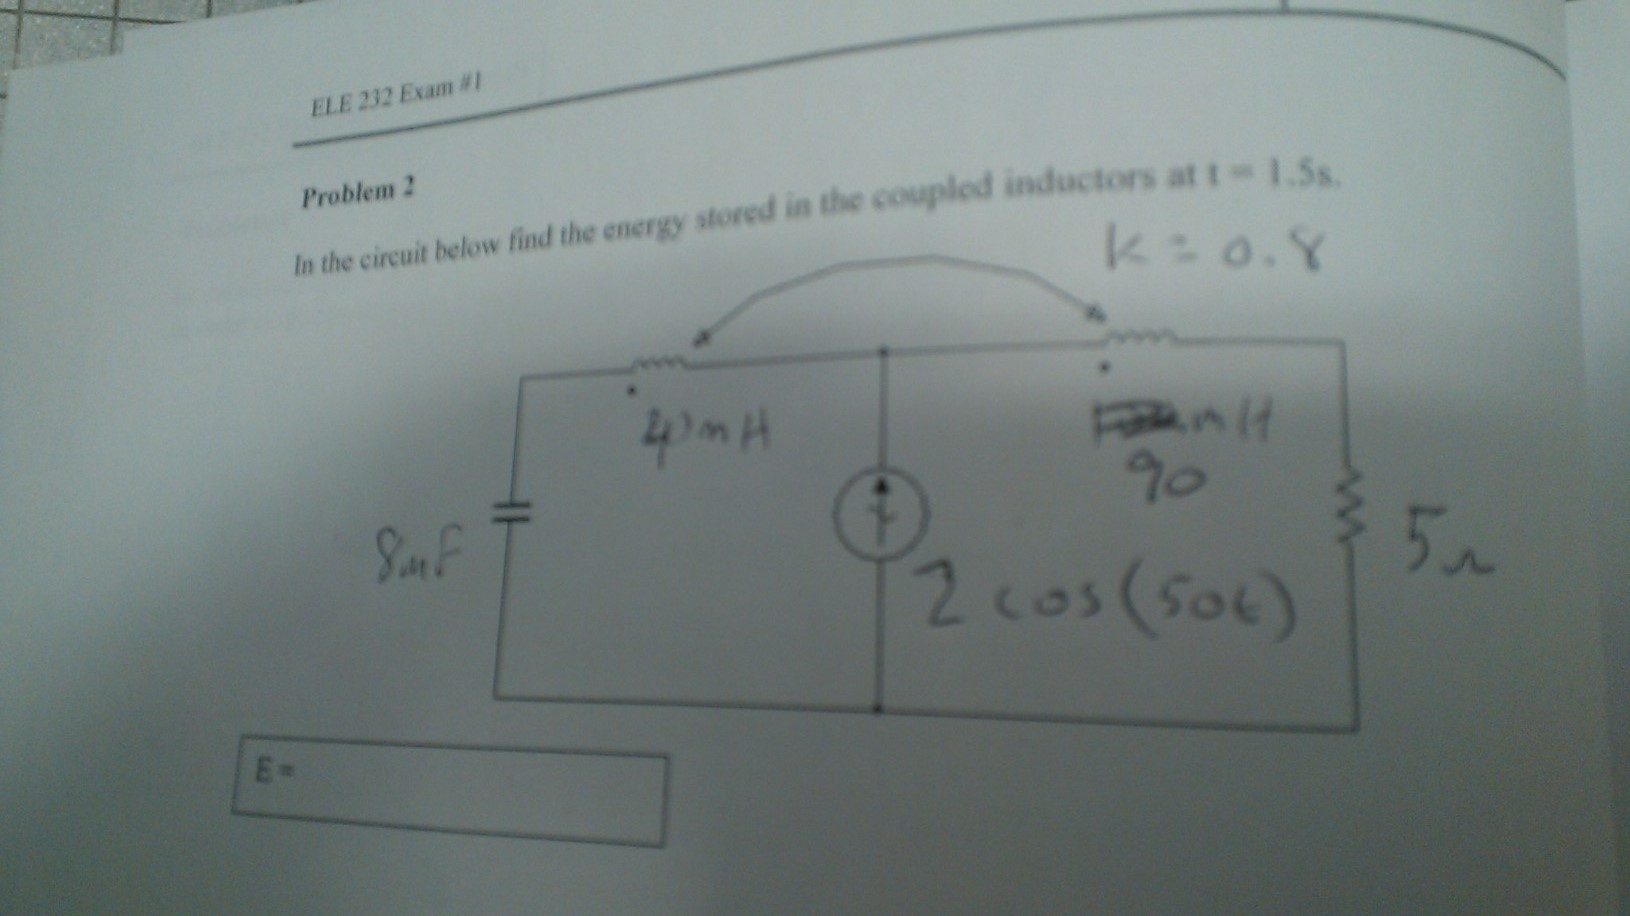 In the circuit below find the energy stored in the